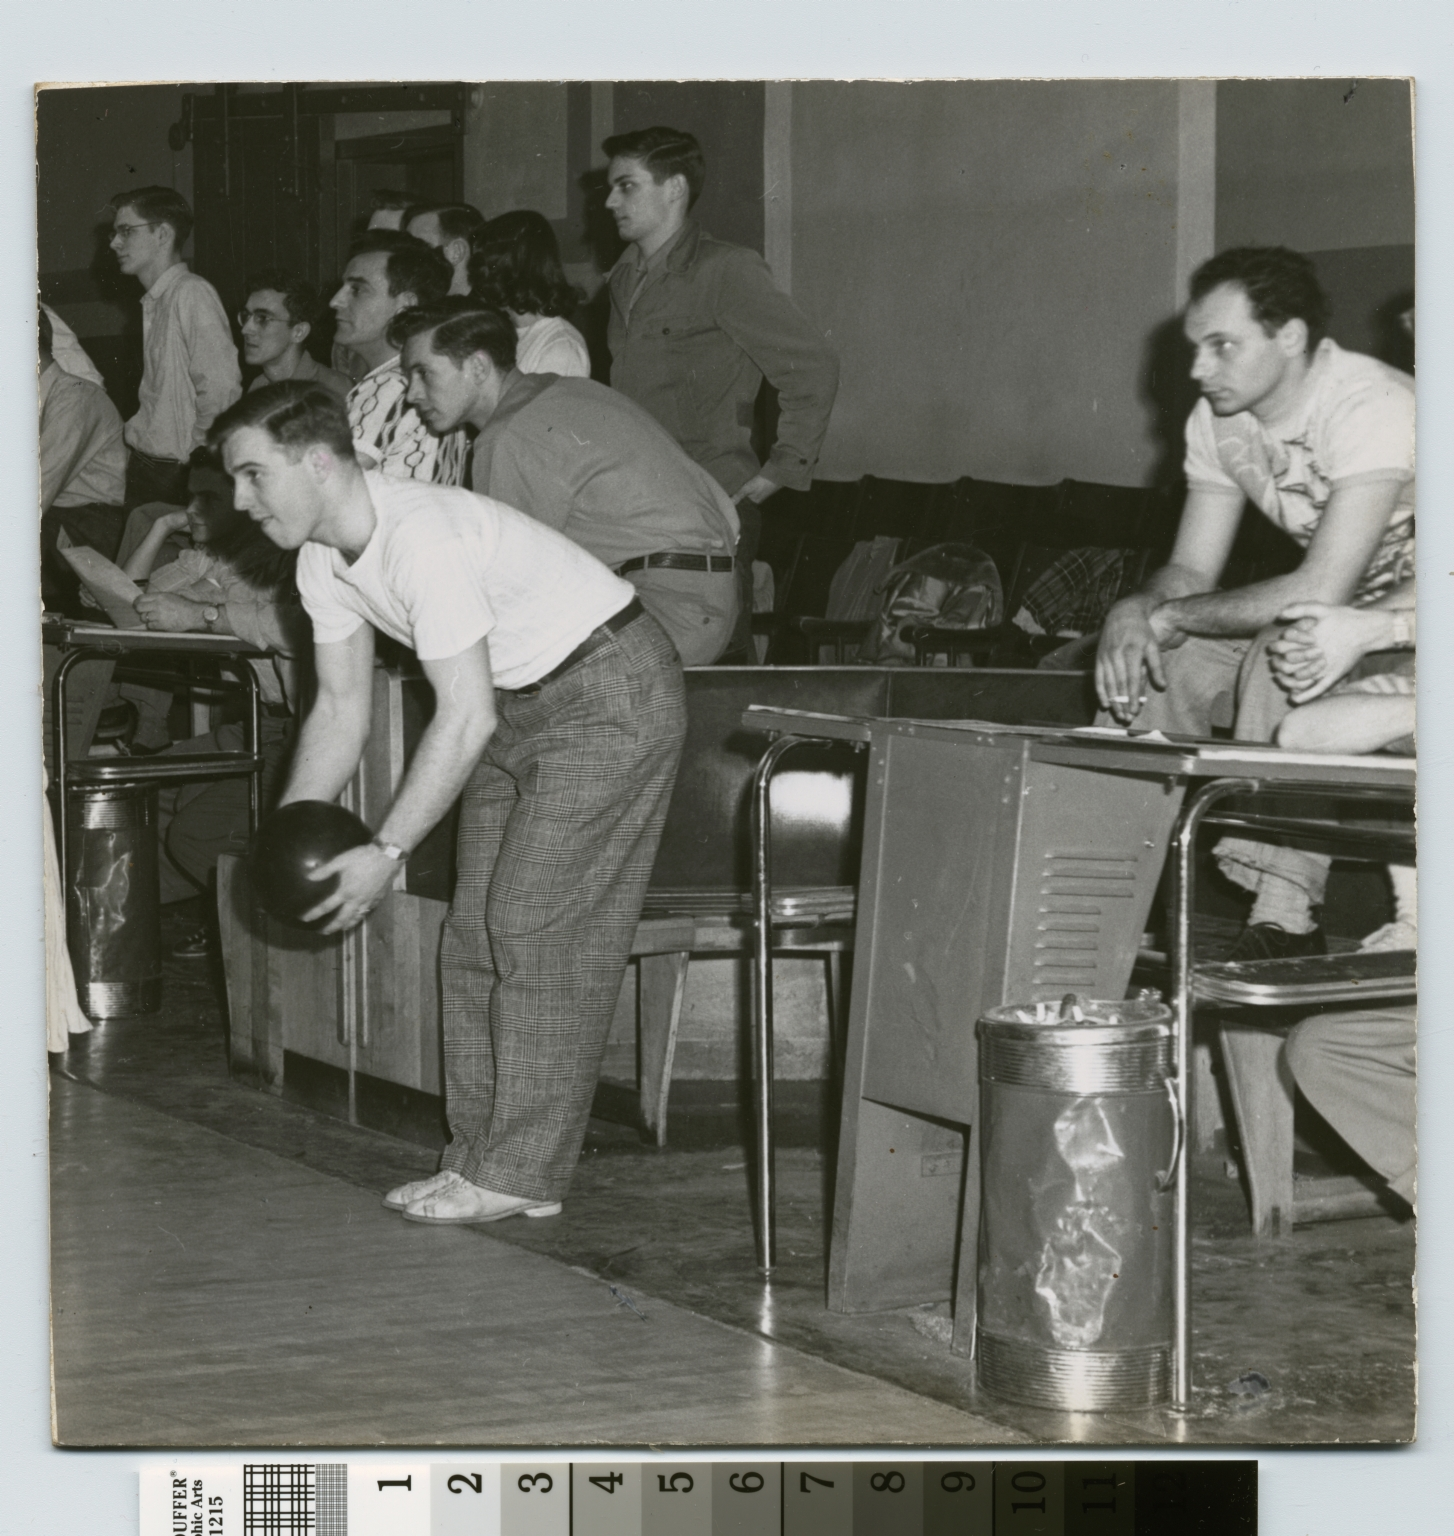 Students activities, Rochester Institute of Technology men's bowling league